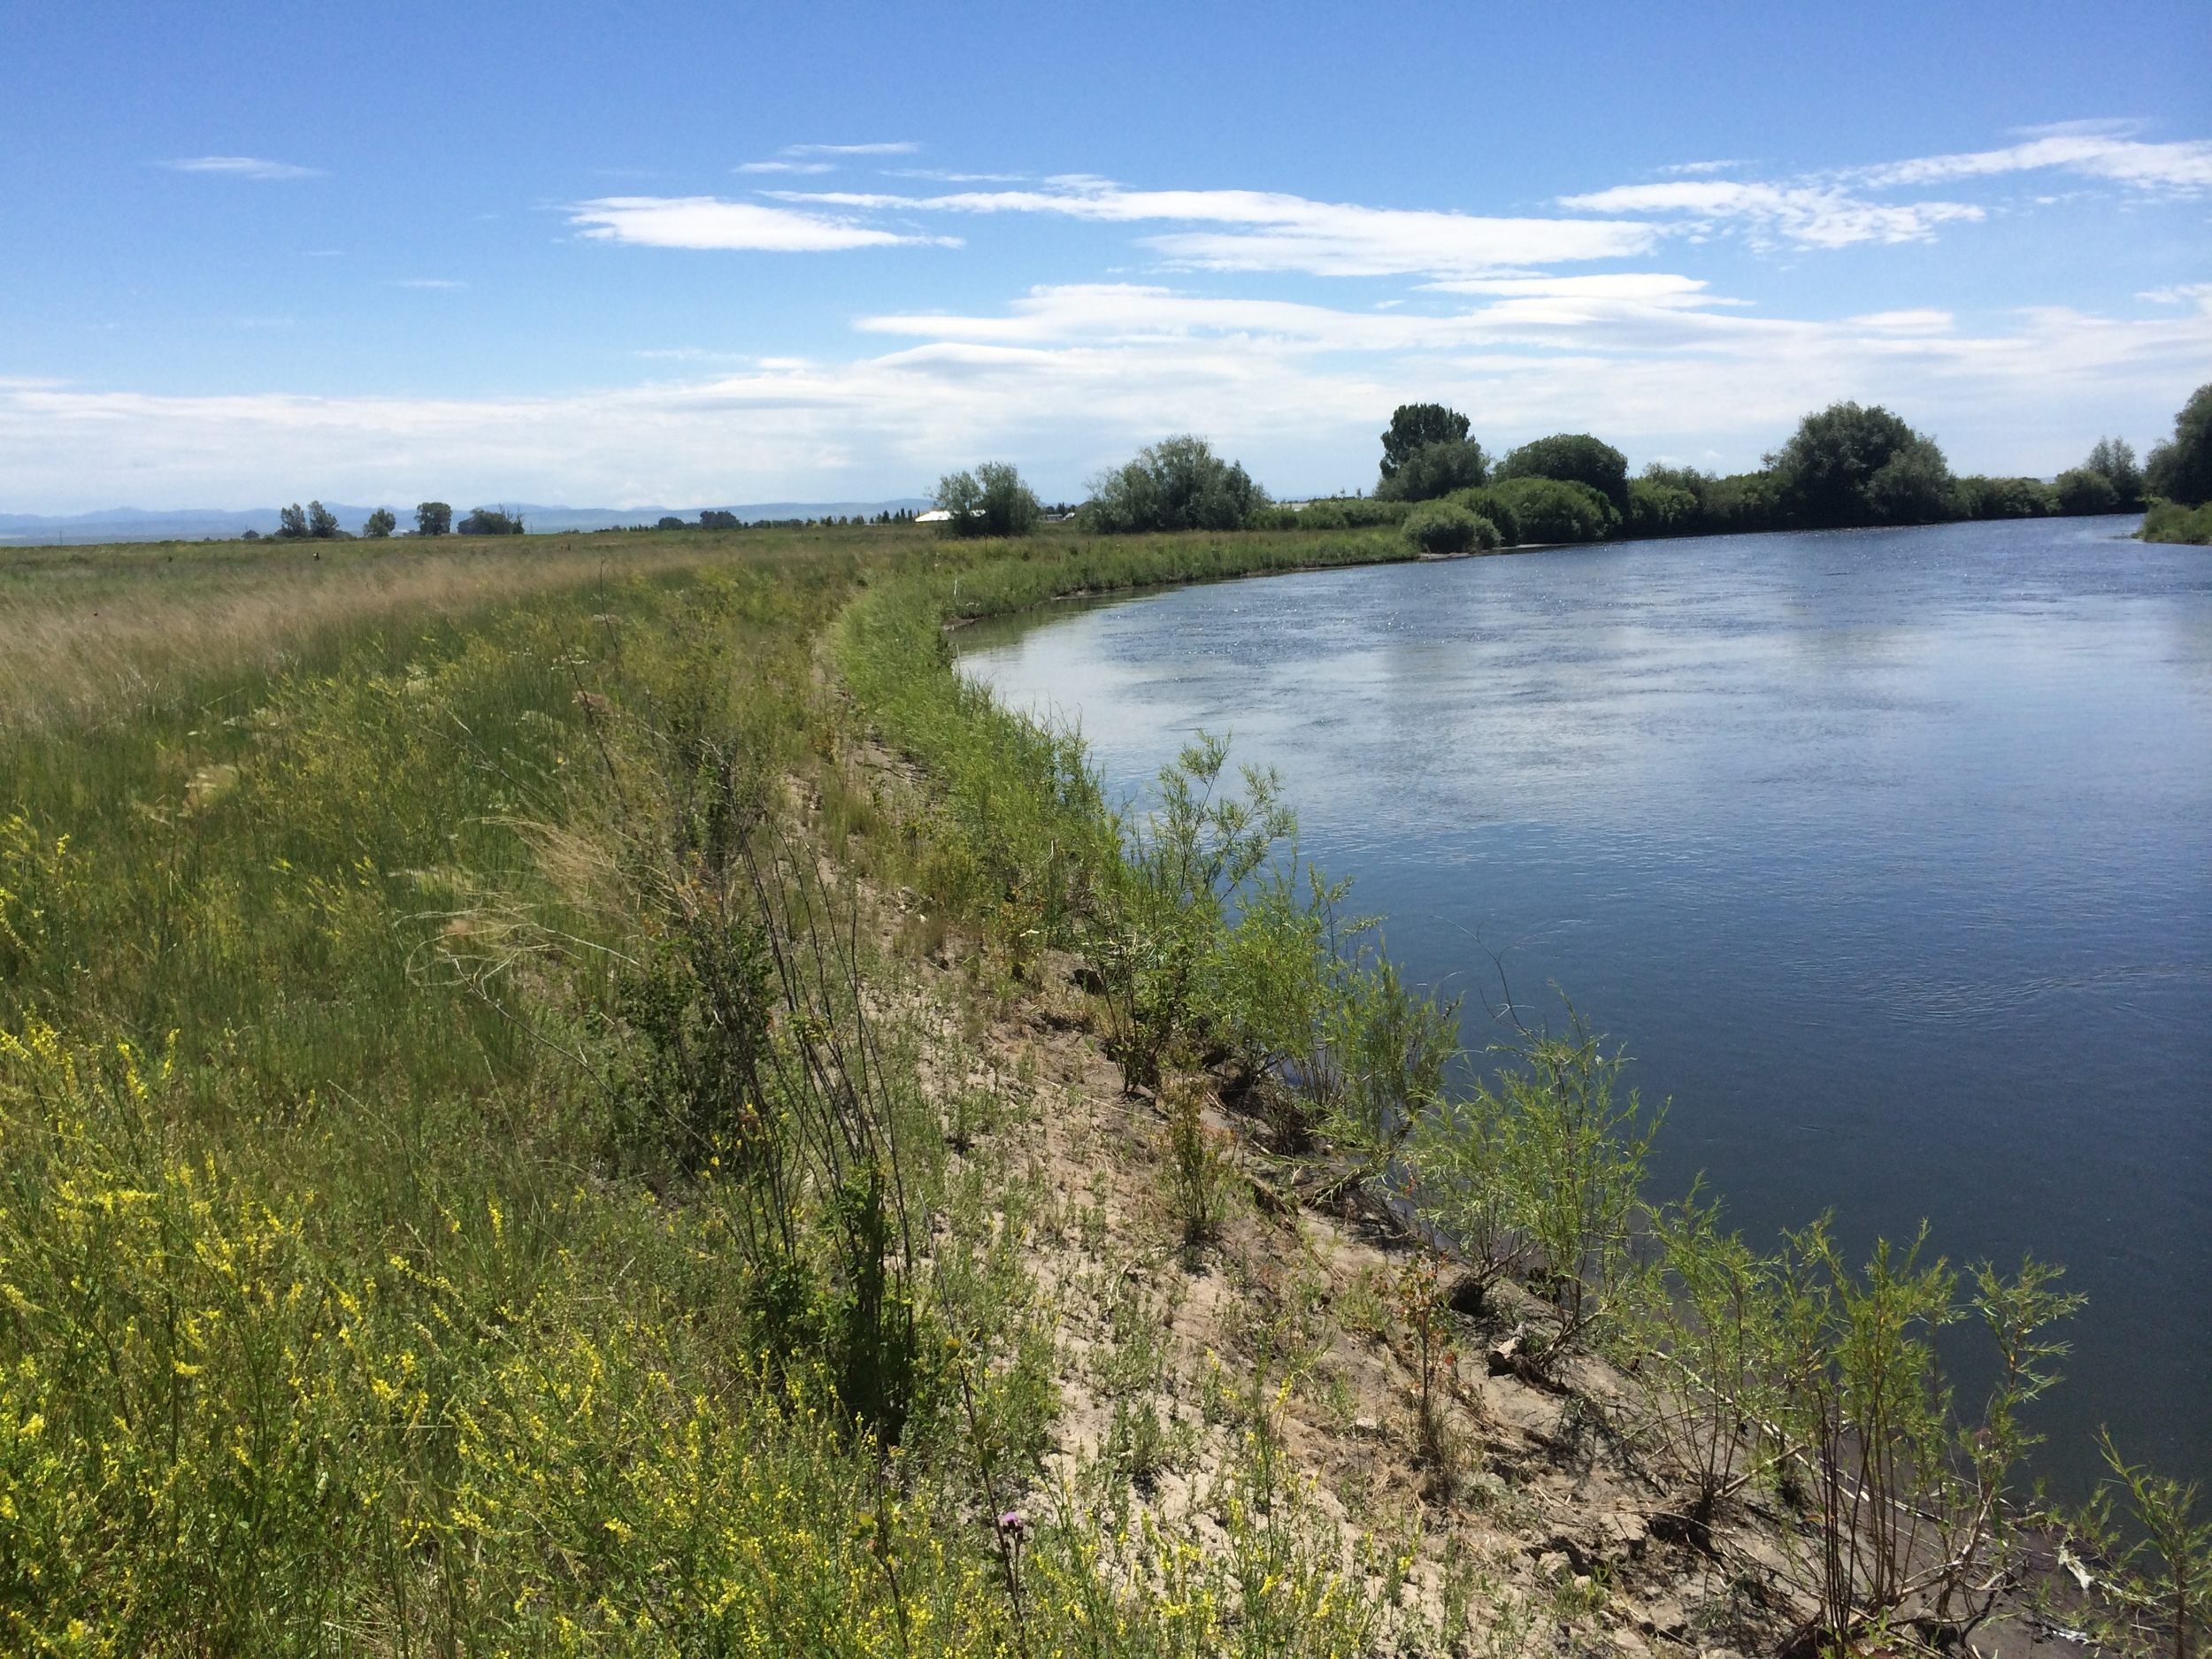 After - bank has been re-sloped and is held in place by many rows of planted willows